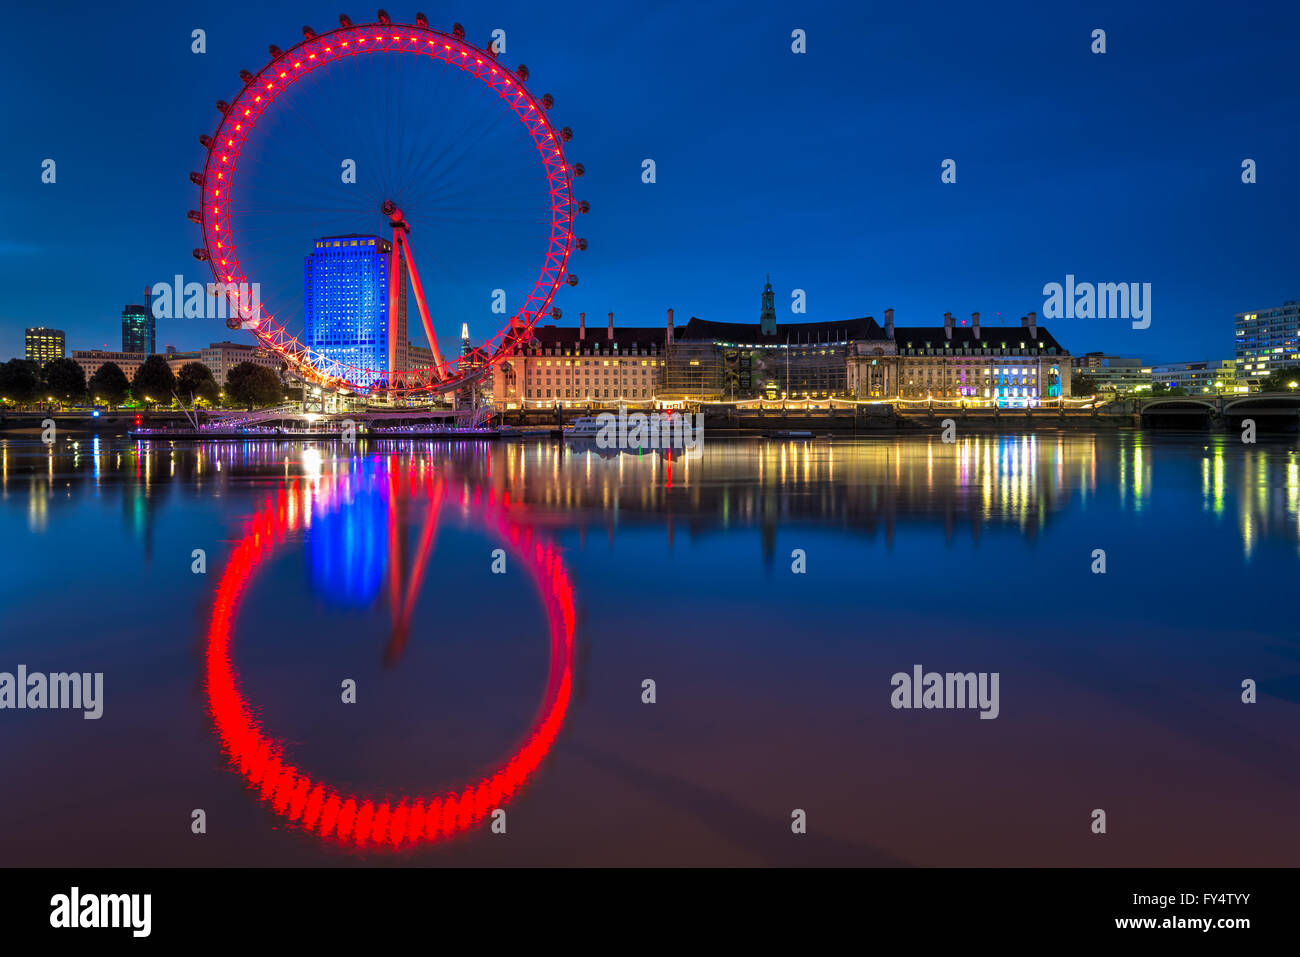 Le London Eye, London, Royaume-Uni Banque D'Images